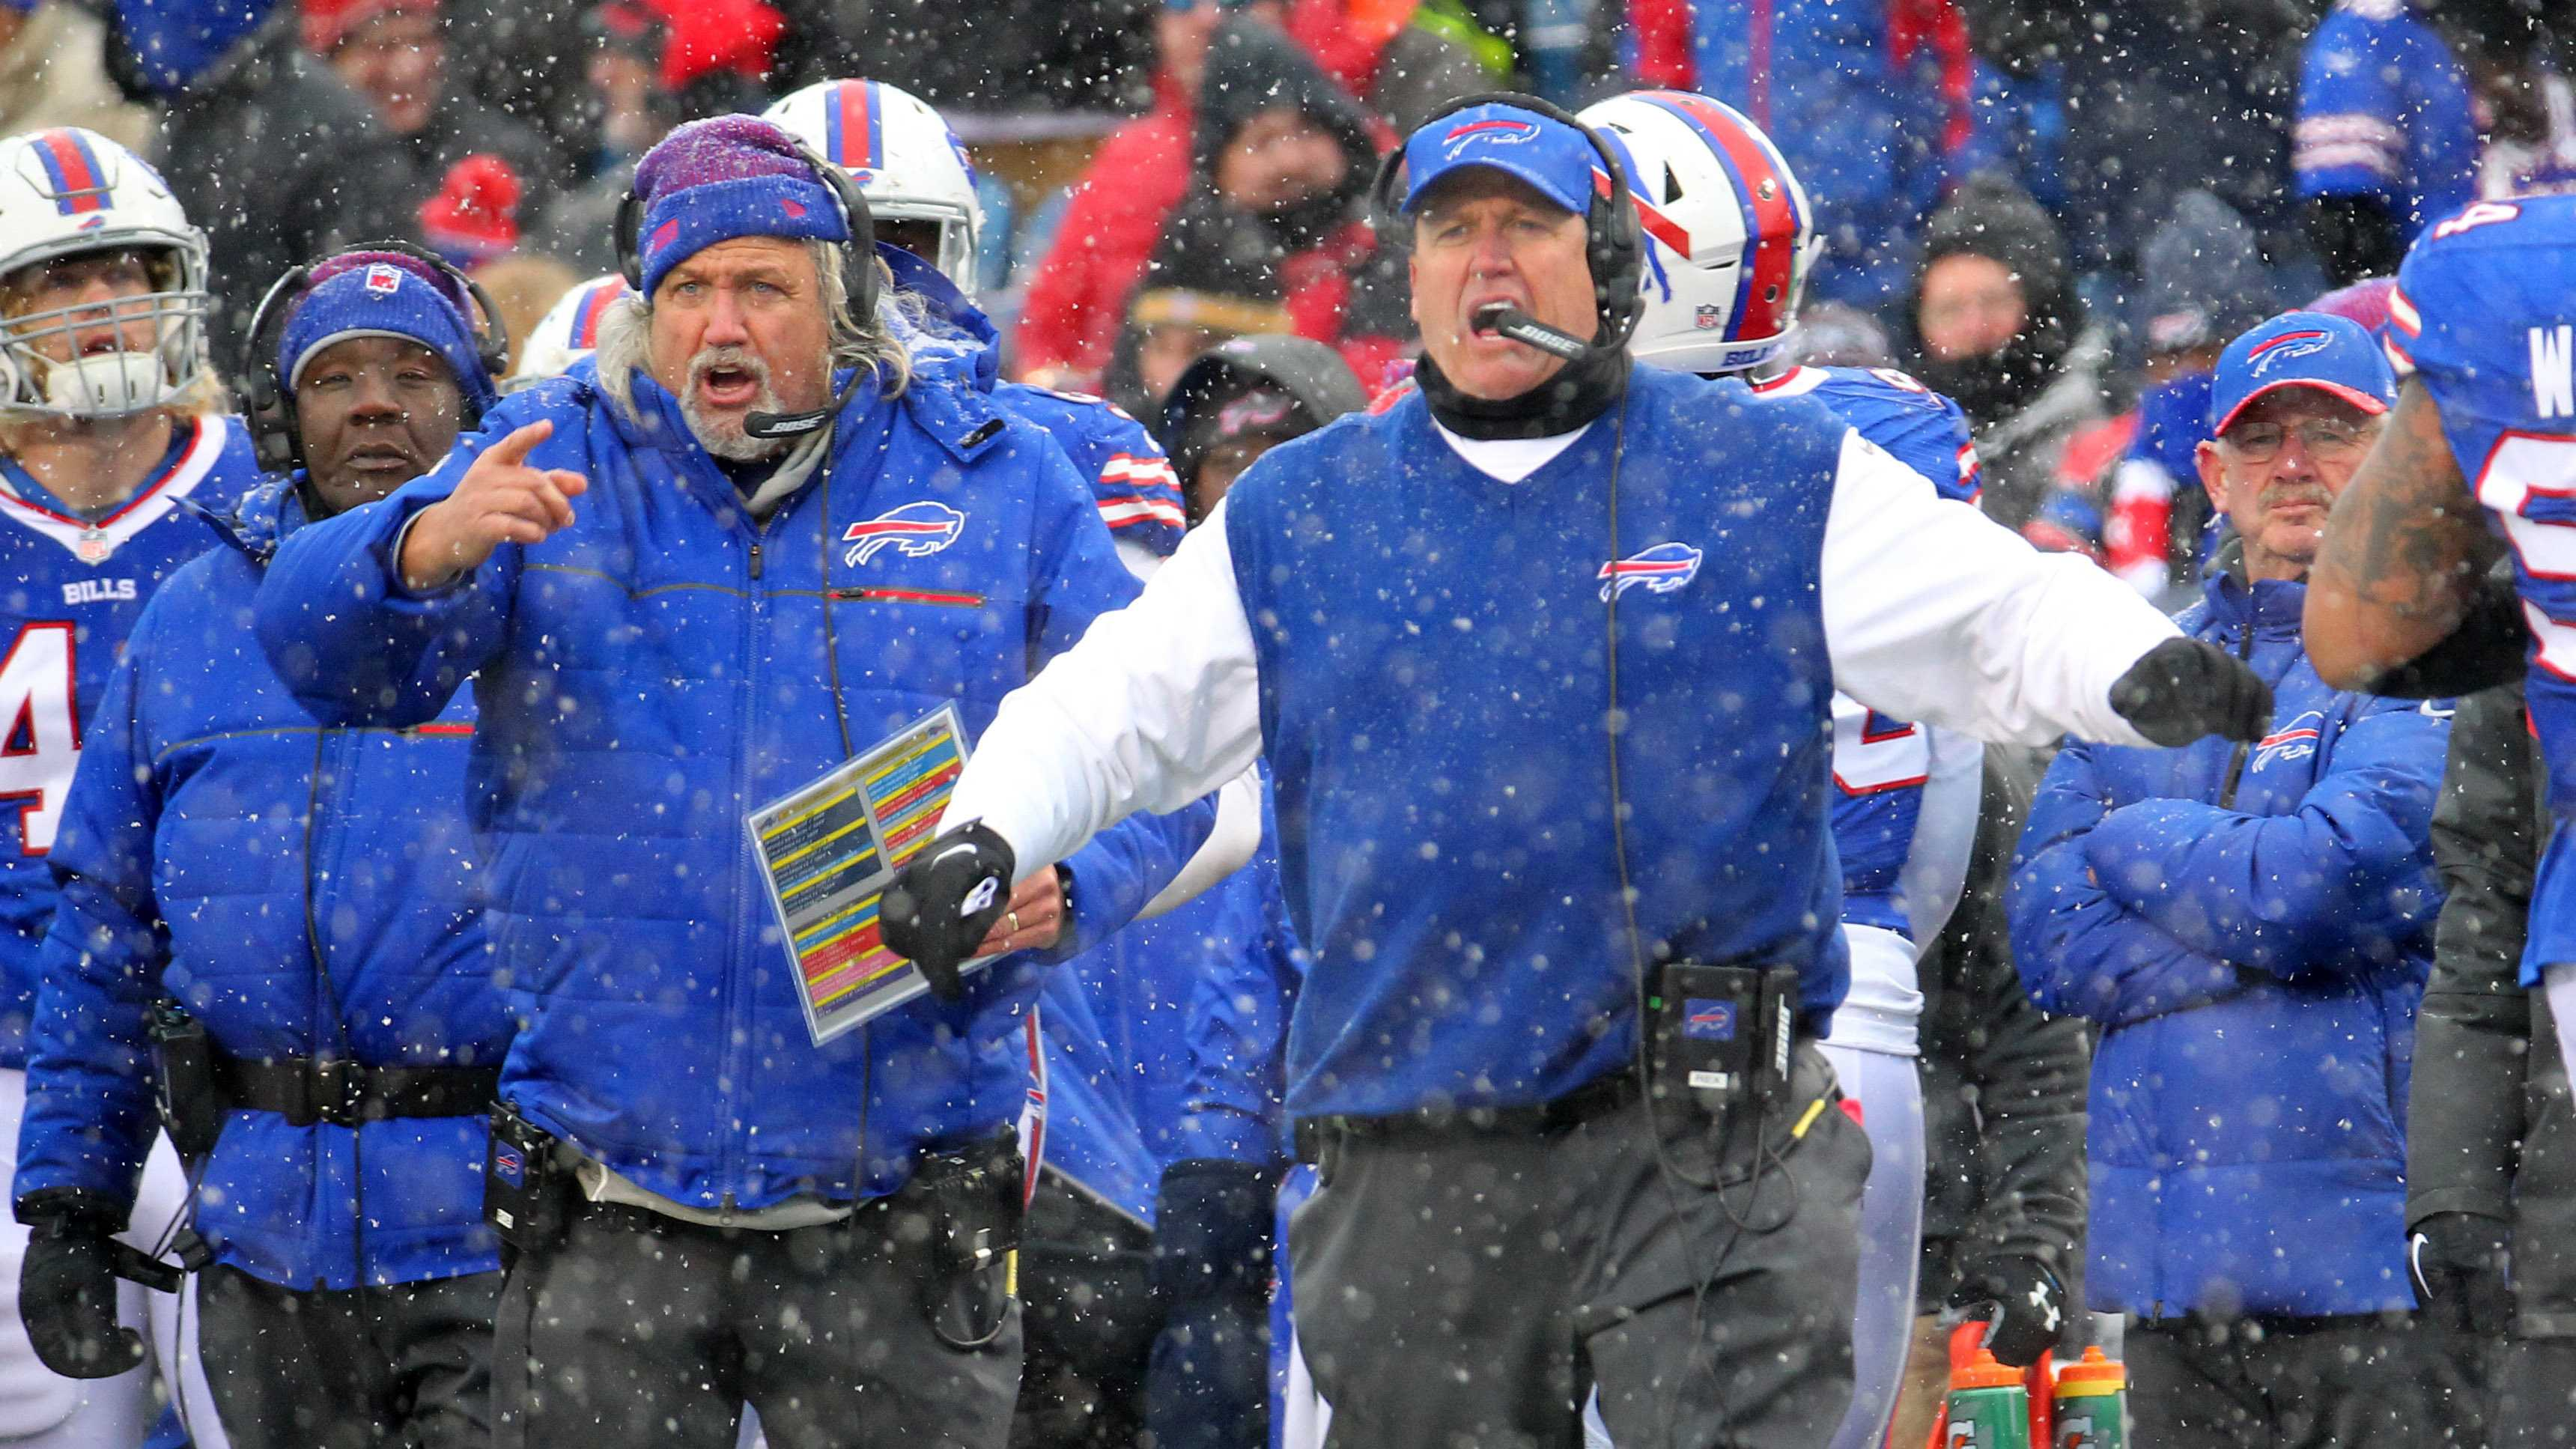 In this Dec. 11, 2016, file photo, Buffalo Bills head coach Rex Ryan, right, and his brother, assistant head coach Rob Ryan, left, react during the second half of an NFL football game against the Pittsburgh Steelers in Orchard Park, N.Y.